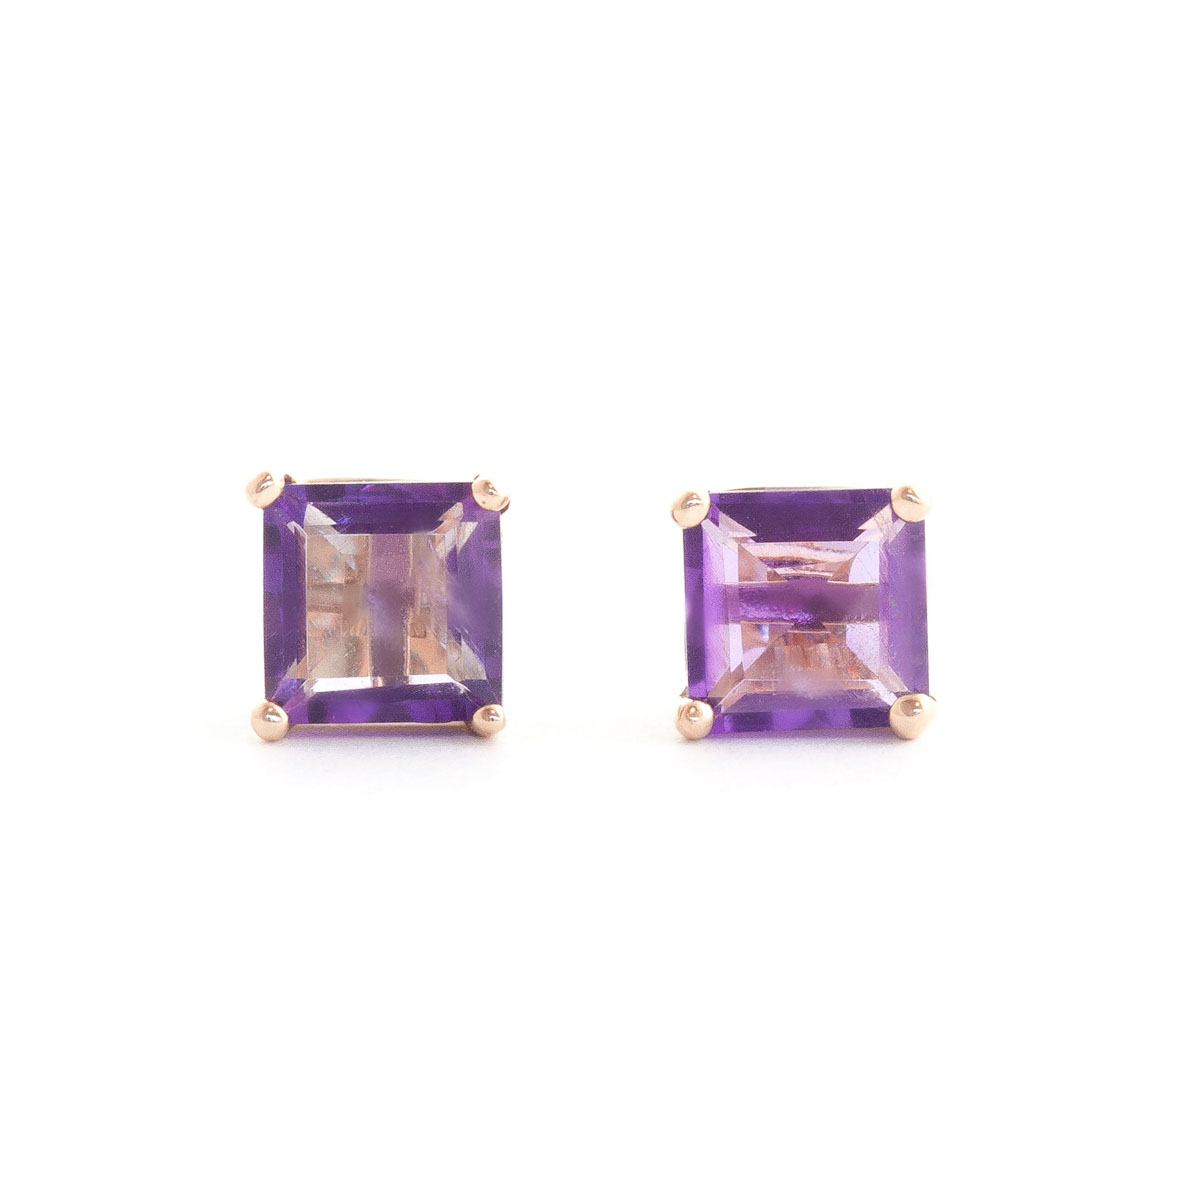 Amethyst Stud Earrings 1.75 ctw in 9ct Rose Gold